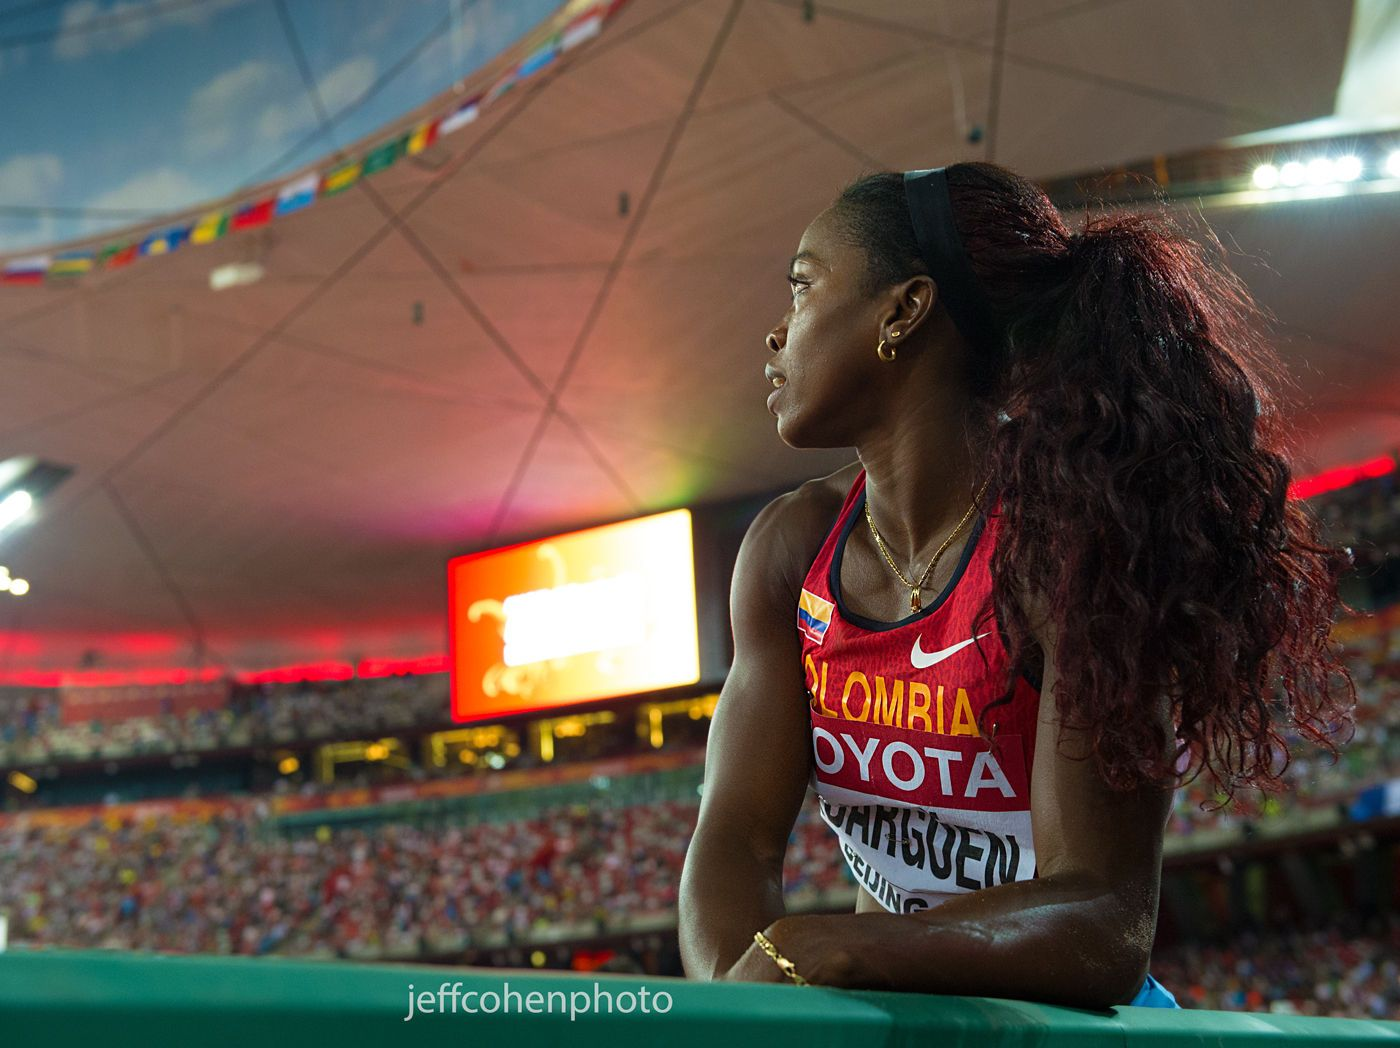 1beijing2015_day1_imbarguen_tj_jeff_cohen_photo_1198_recovered_web.jpg